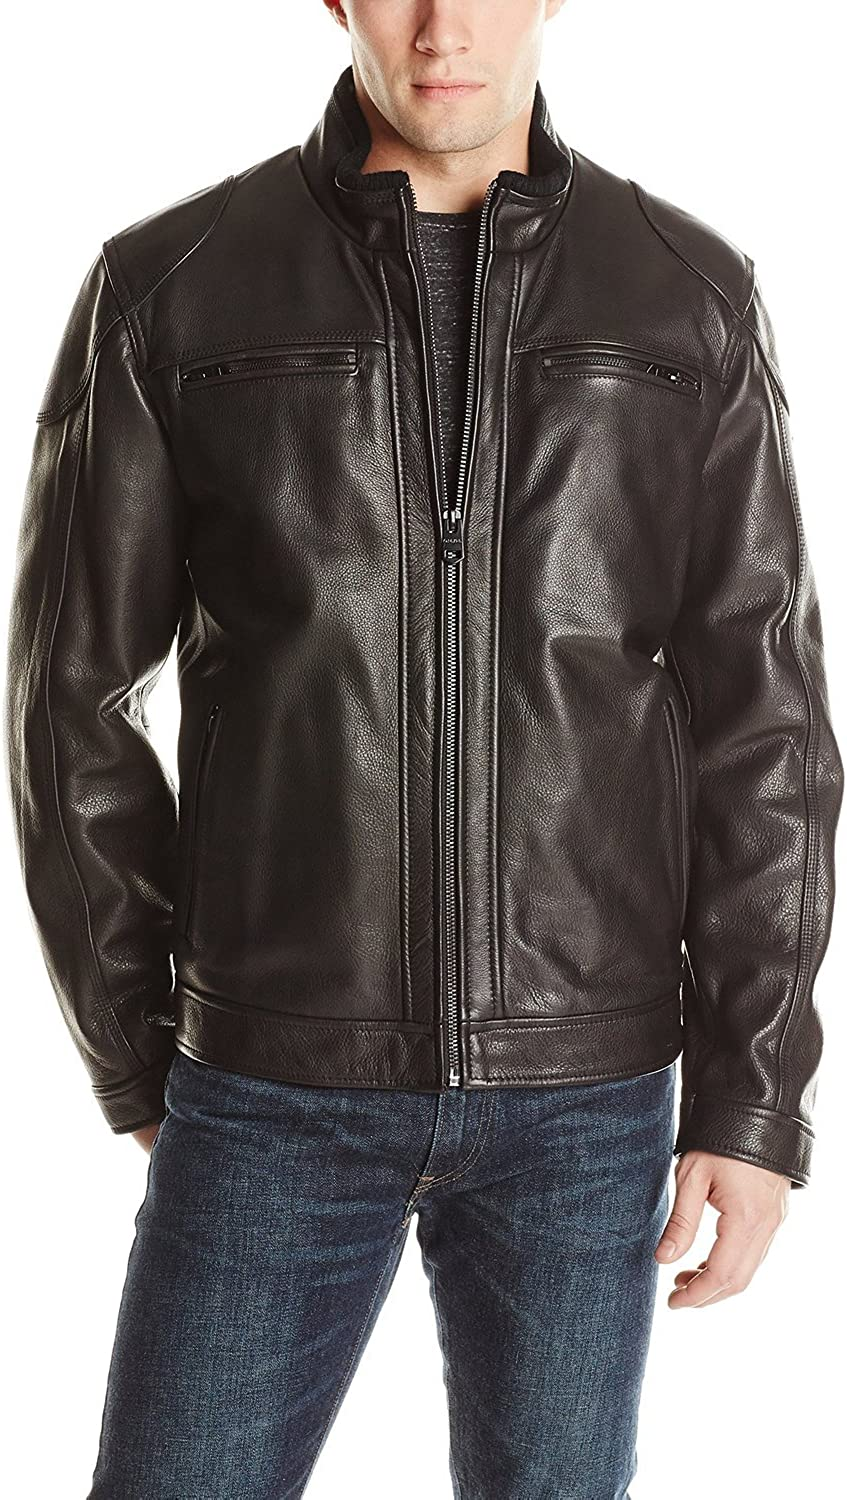 1501529 Black, Racer Jacket Laverapelle Mens Genuine Lambskin Leather Jacket